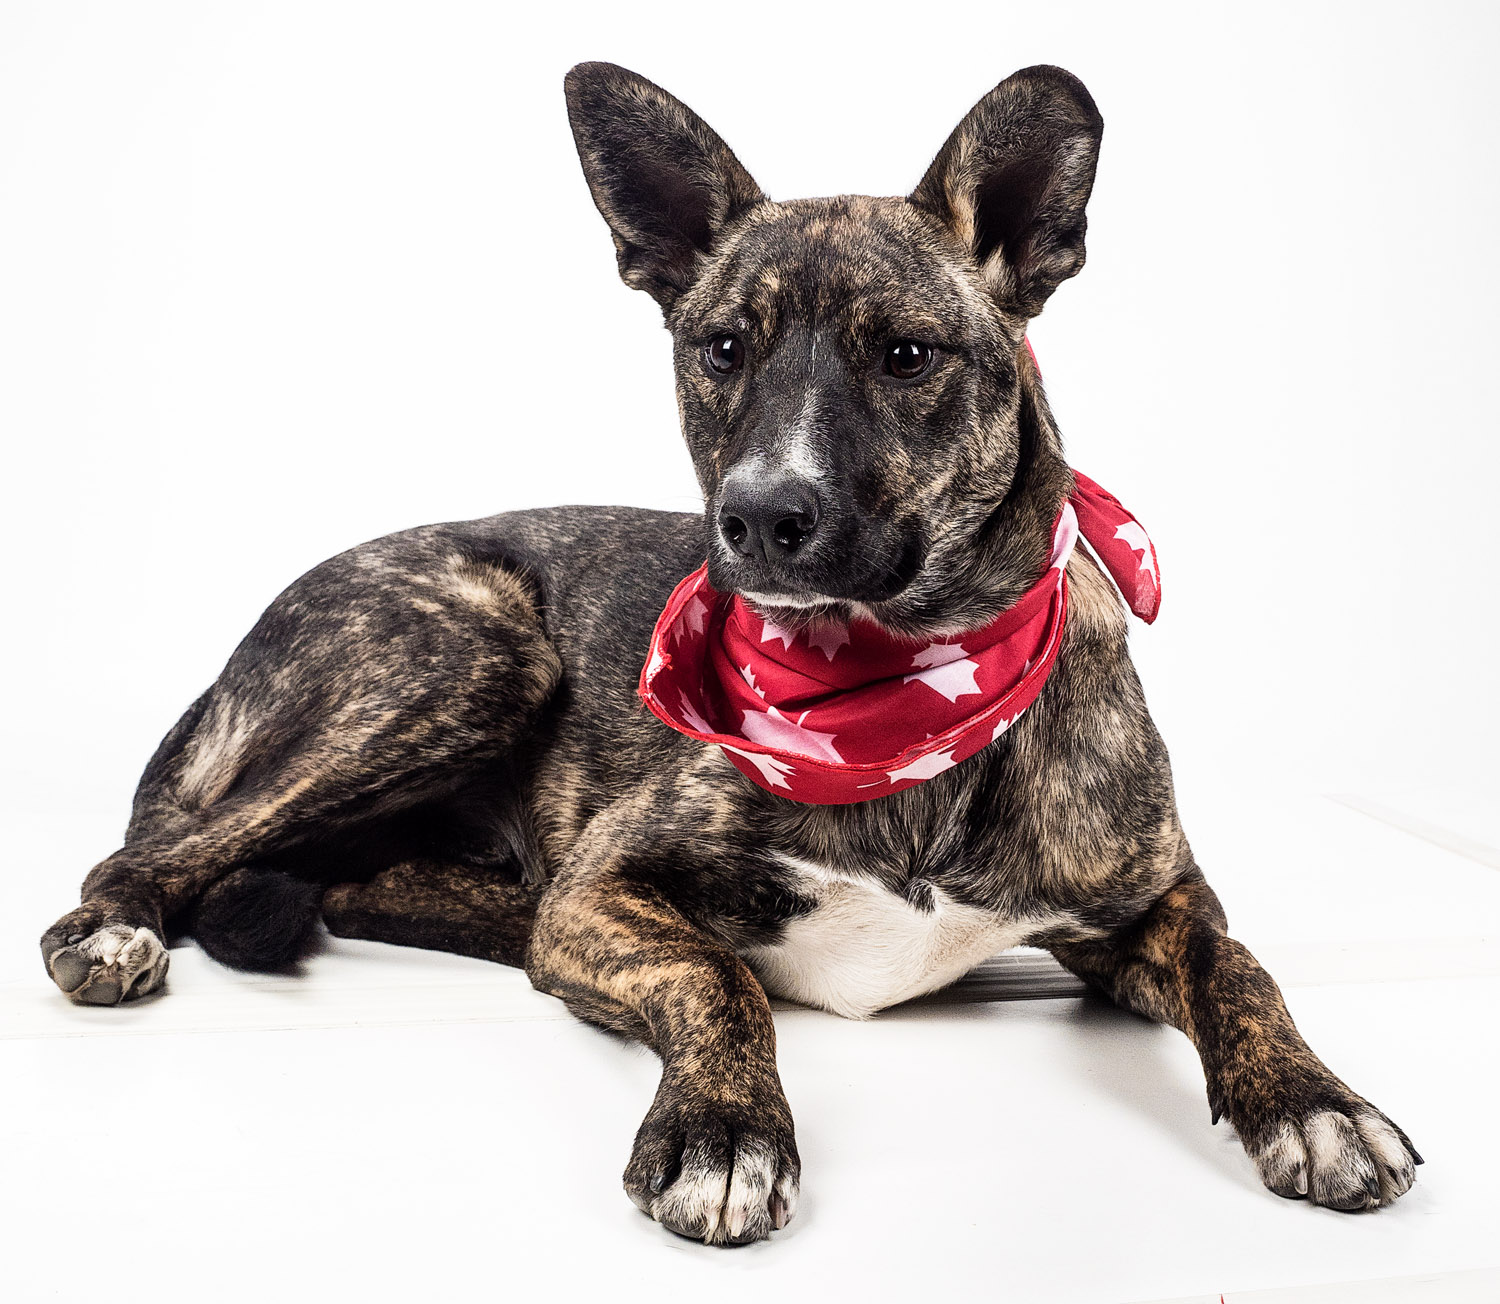 dog with red bandana - Tips for Great Lighting for Pet Photography